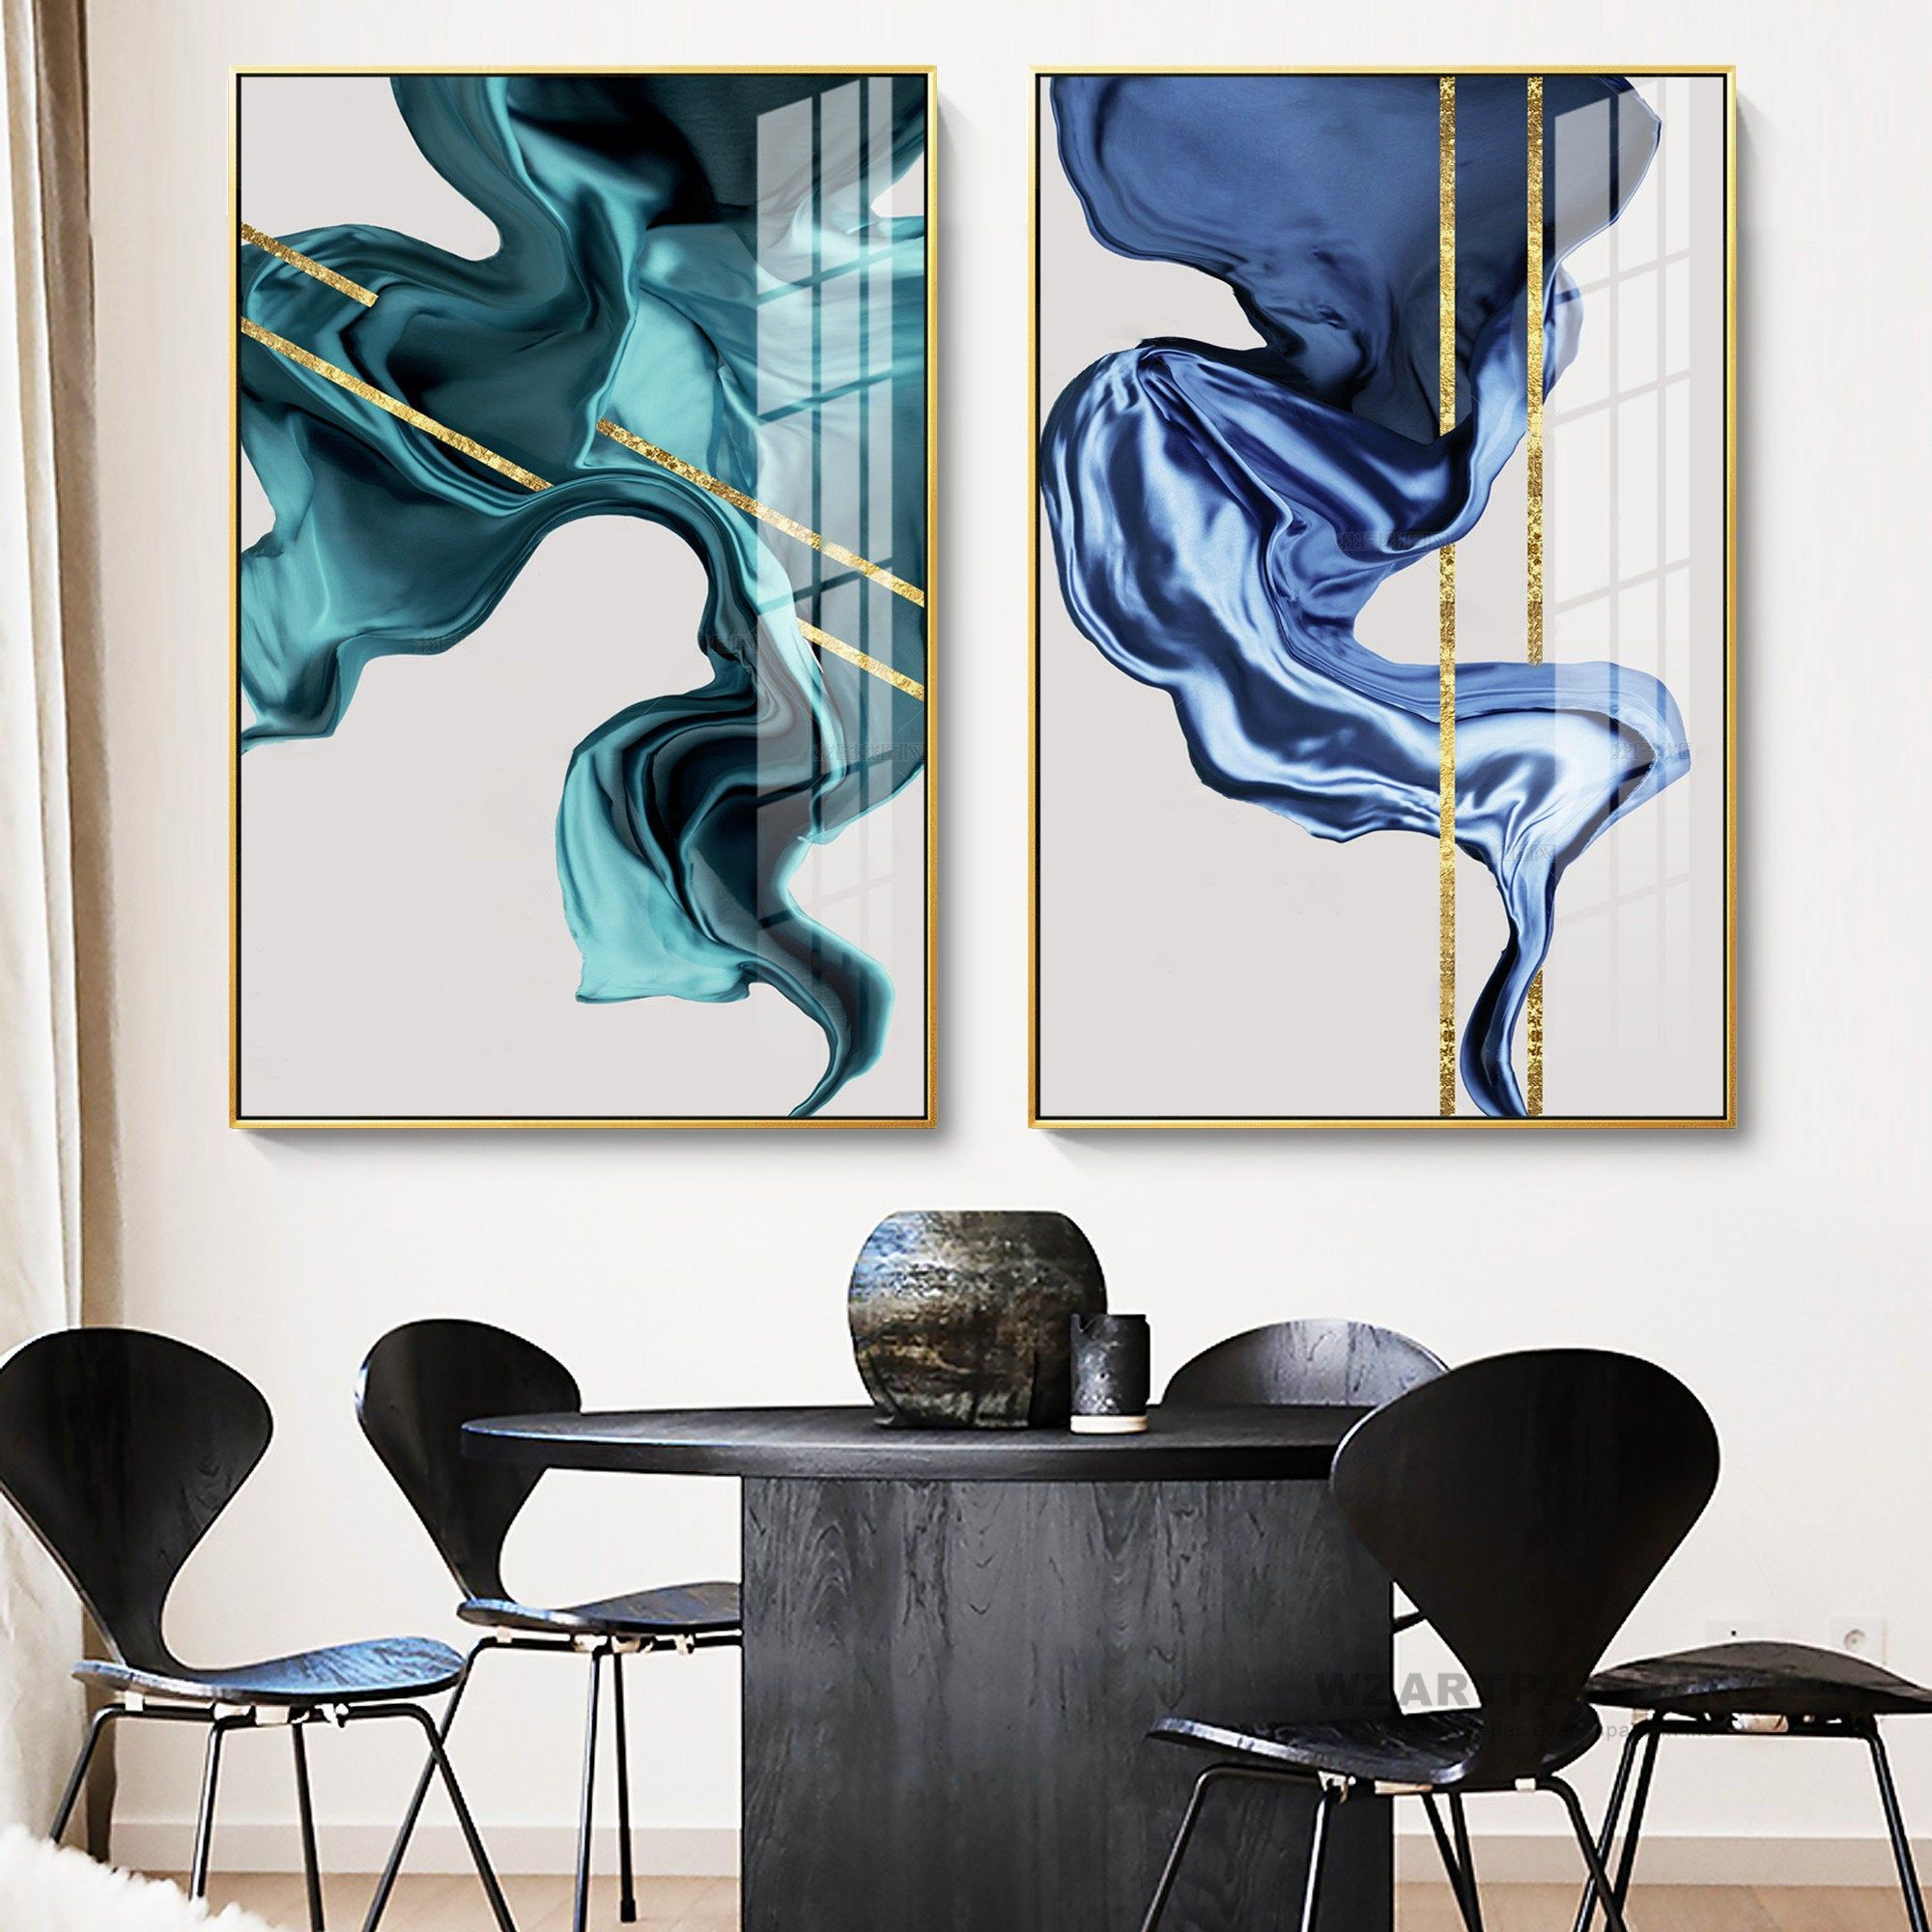 Framed Wall Art Set Of 2 Prints Geometric Abstract Gold Navy Blue Green Print Painting Painting On Canvas G Framed Wall Art Sets Frames On Wall Framed Wall Art